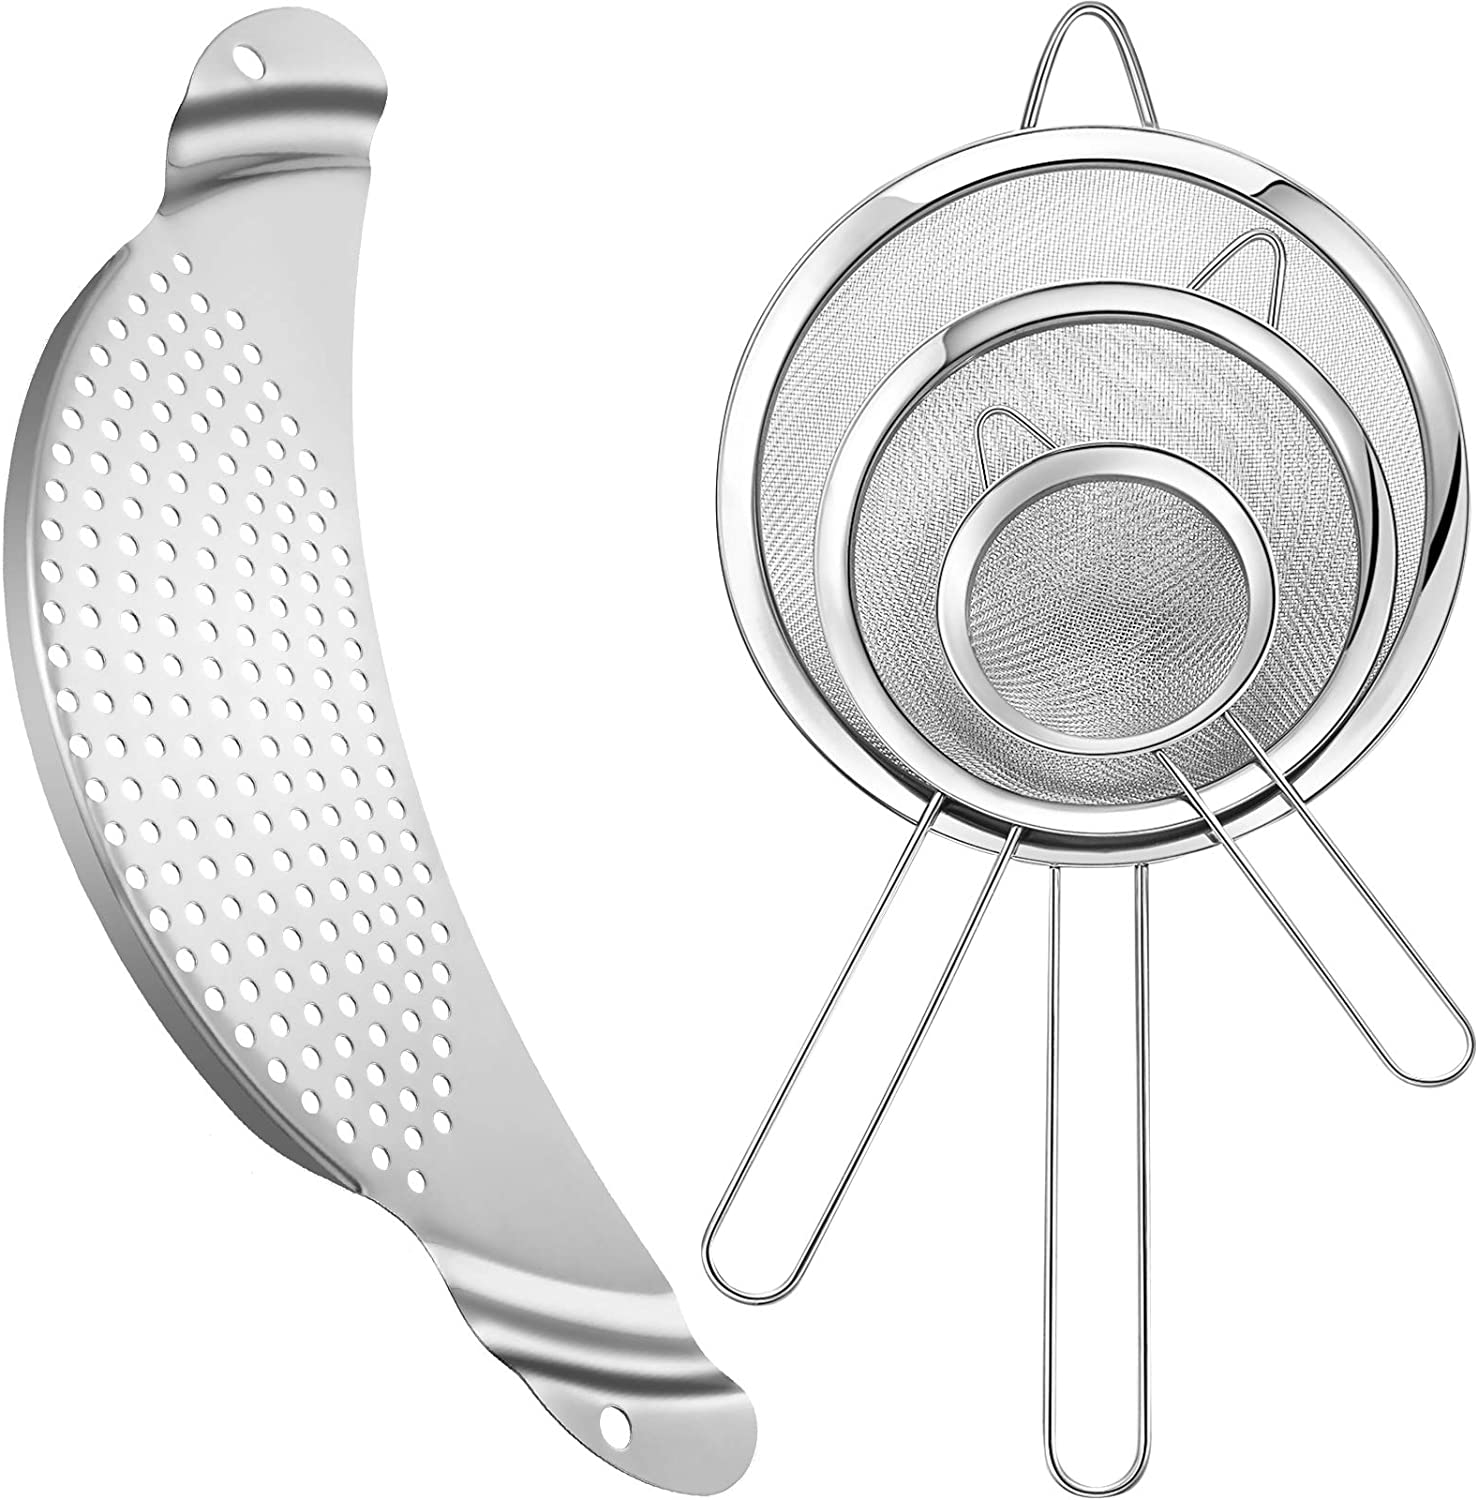 4 Pieces Pot Mesh Strainer Set Includes 3 Pieces Stainless Steel Fine Mesh Strainers Wire Strainers and 1 Piece Pan Pot Strainer Colander Sifter for Vegetables Fruit Pasta Drain and Rinse